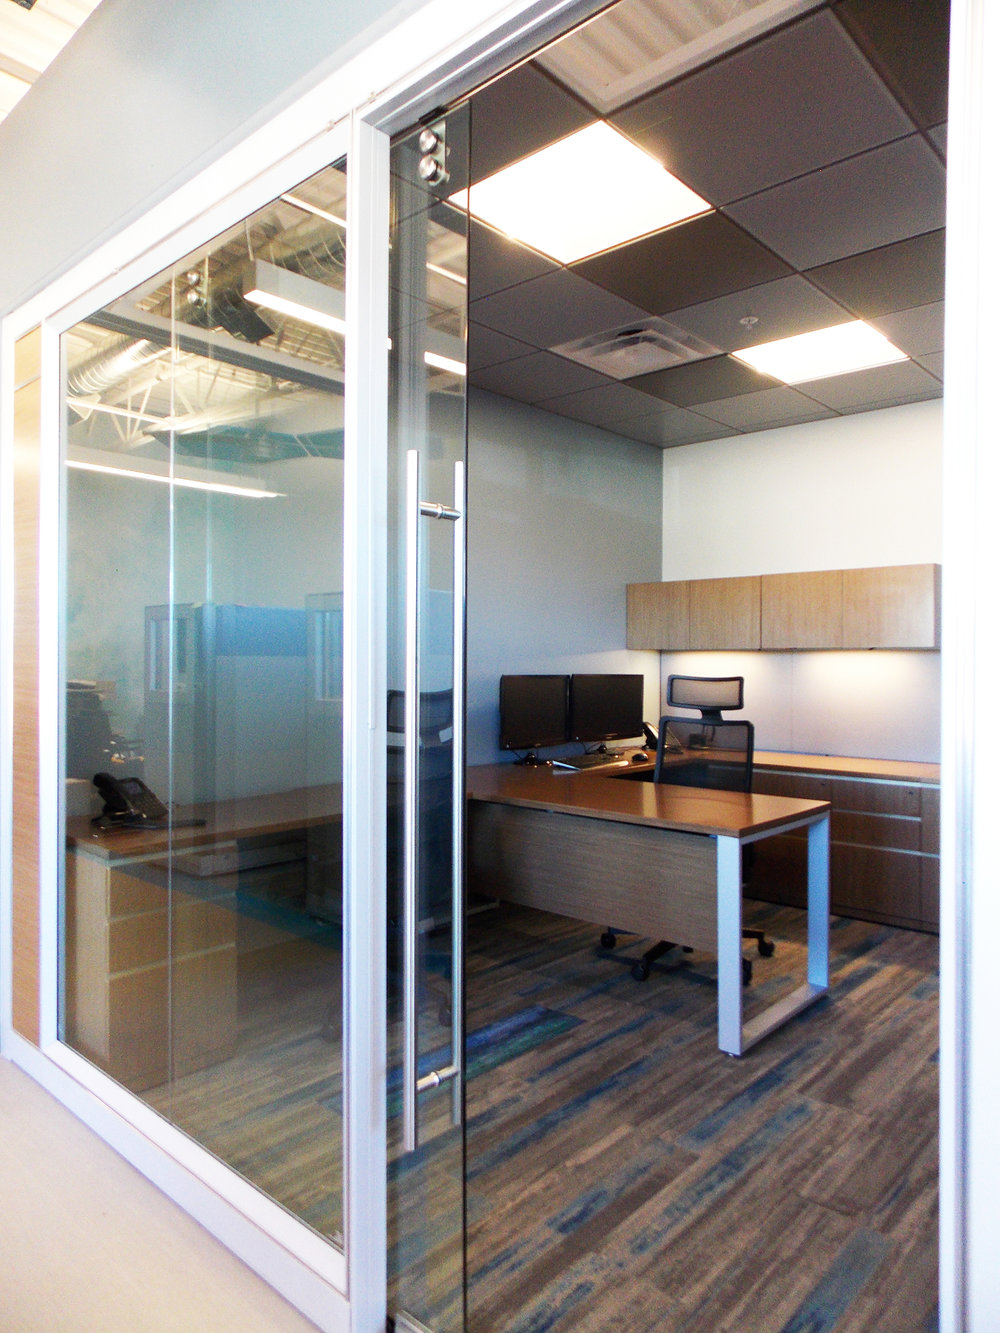 This aluminum and glass architectural wall system provided by  Office Interiors Denver  separates the private offices and conference room from the open work area and cubicles. Natural light from the storefront floods across the space into the private offices so that everyone can take full advantage of the daylight.